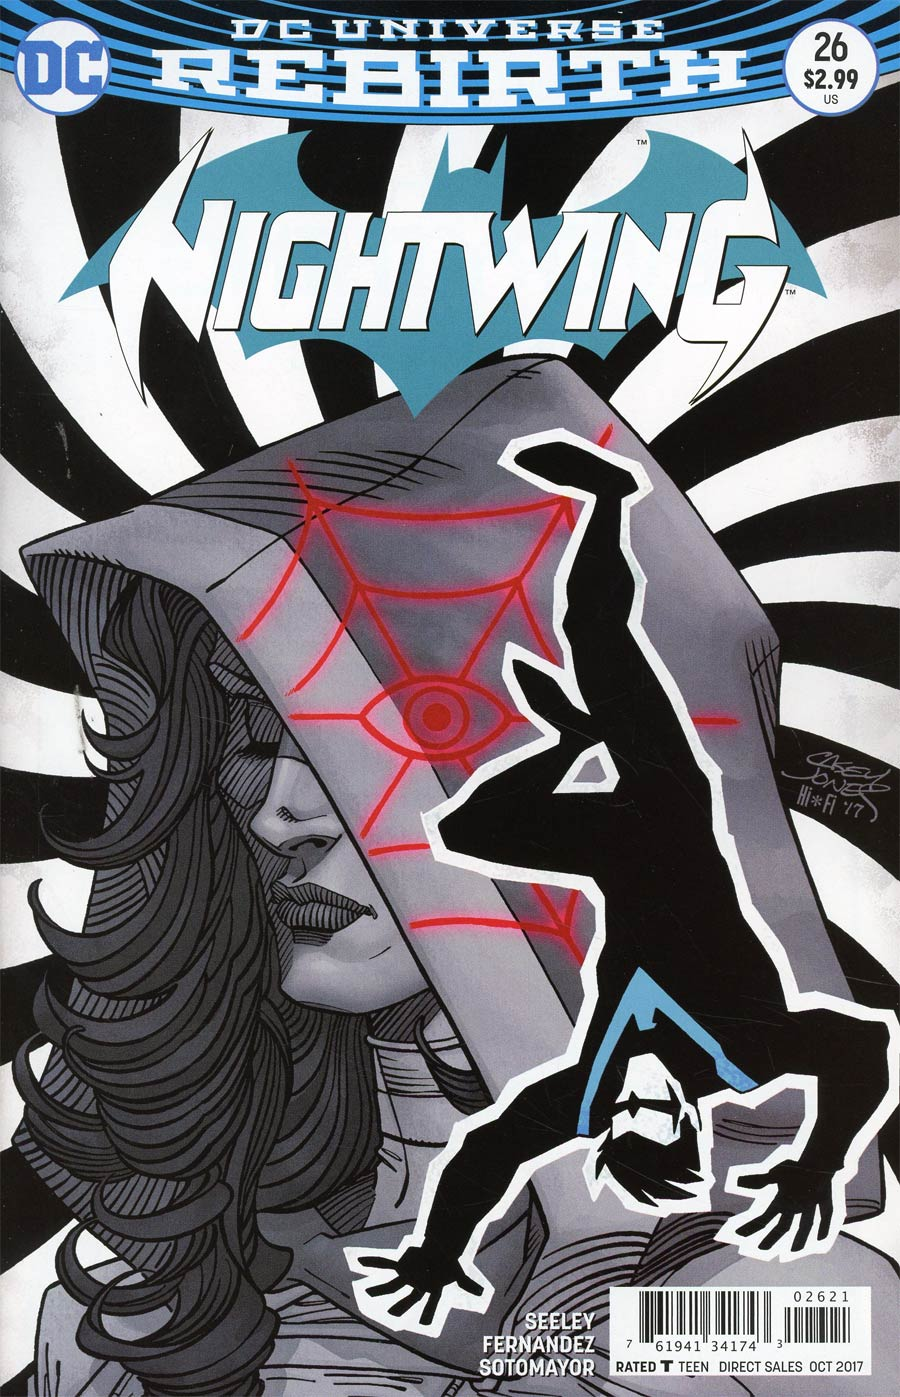 Nightwing Vol 4 #26 Cover B Variant Casey Jones Cover